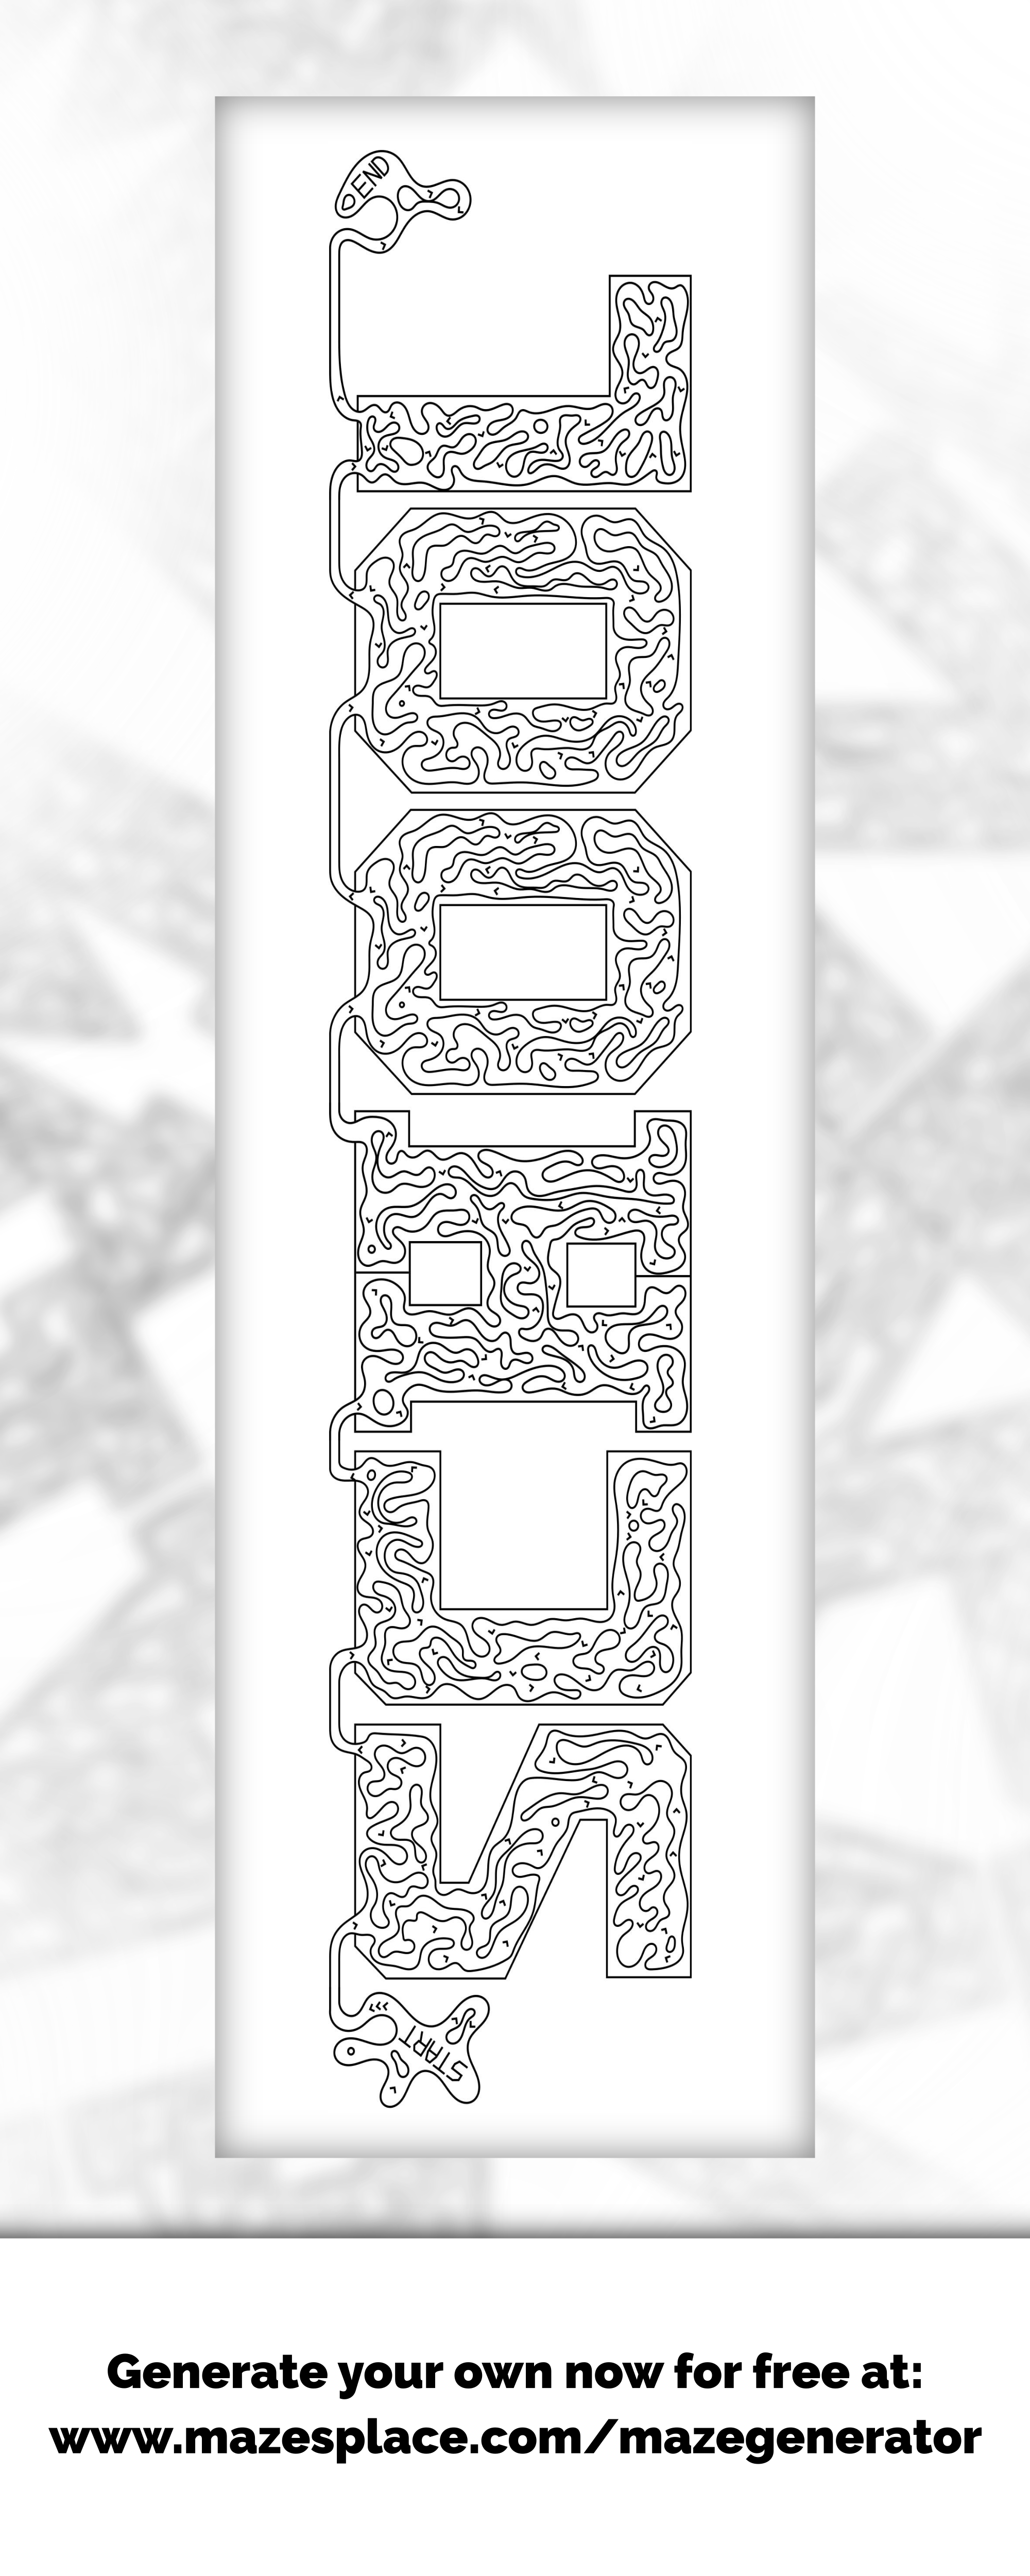 School Maze Create Your Own For Free With Any Words